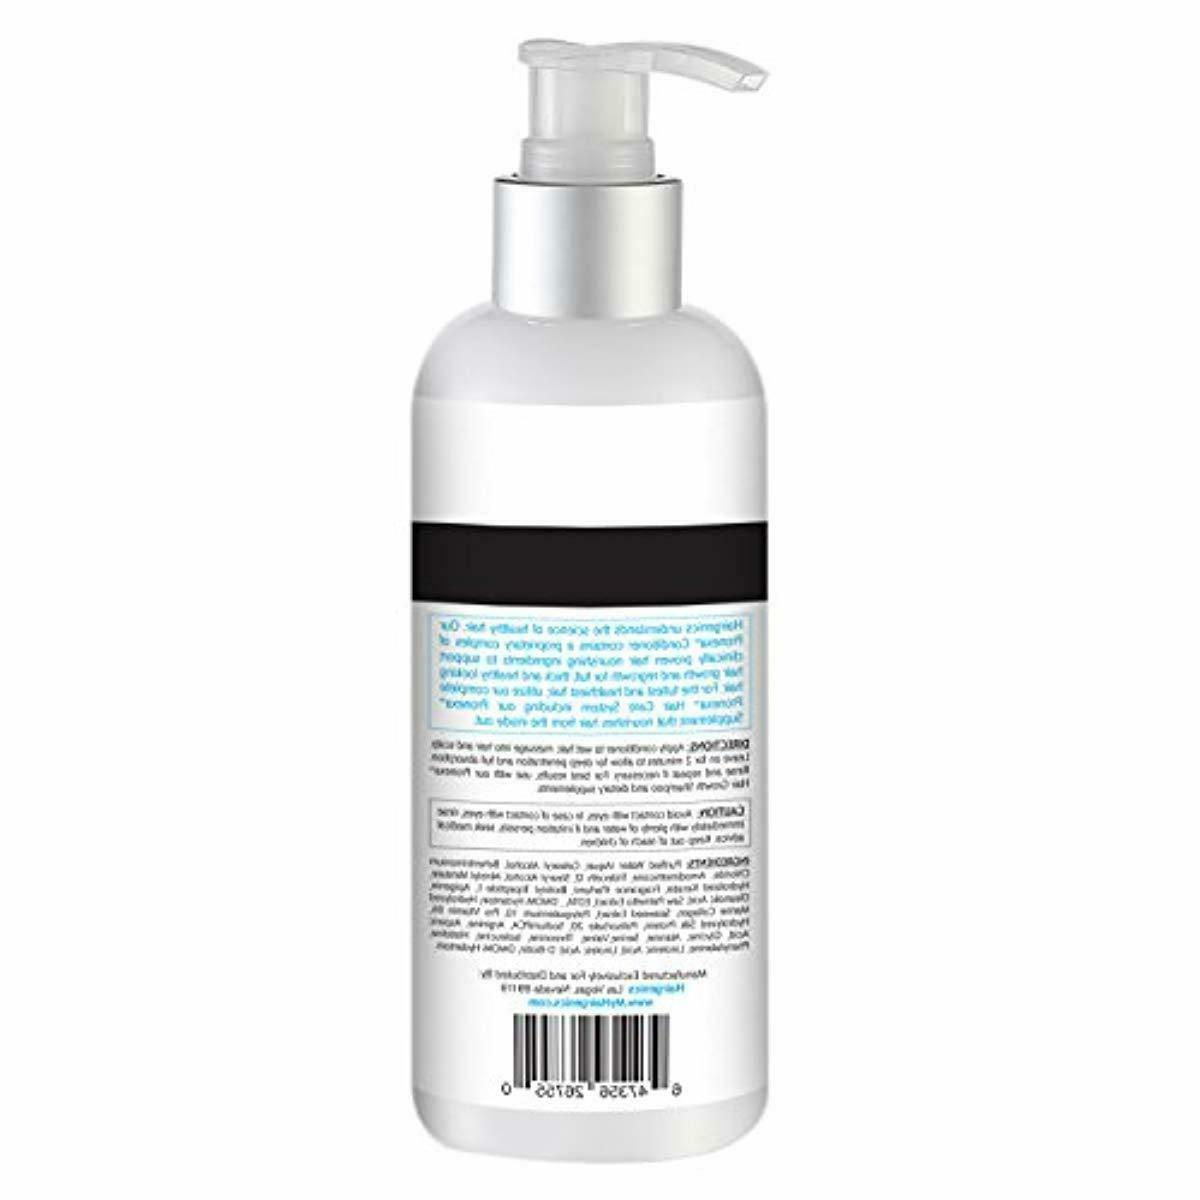 Hairgenics Hair Therapy Conditioner Hair Growth Cond